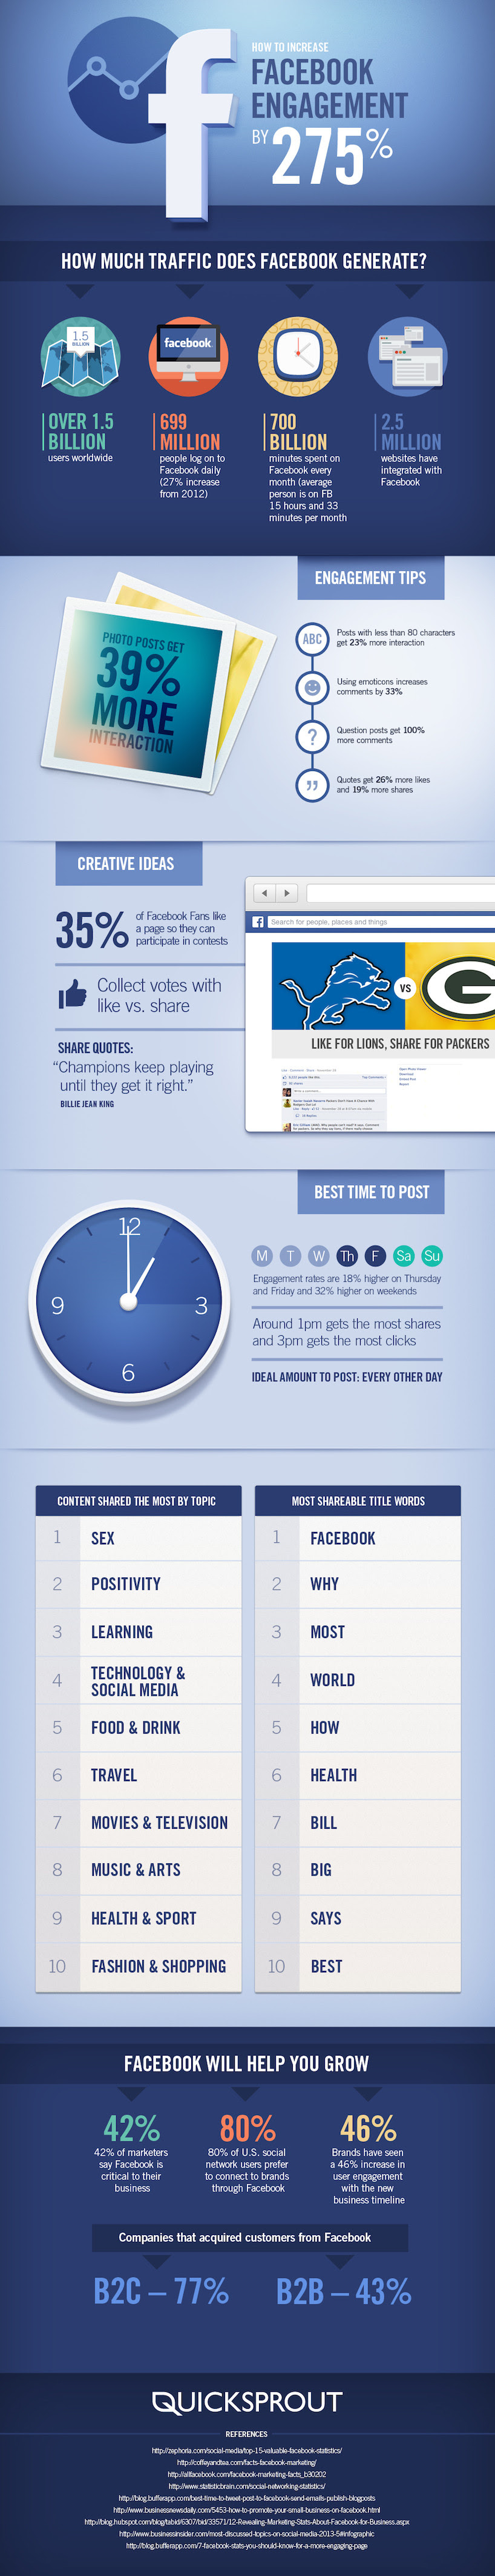 How to Increase Your Facebook Engagement by 275 percent - infographic